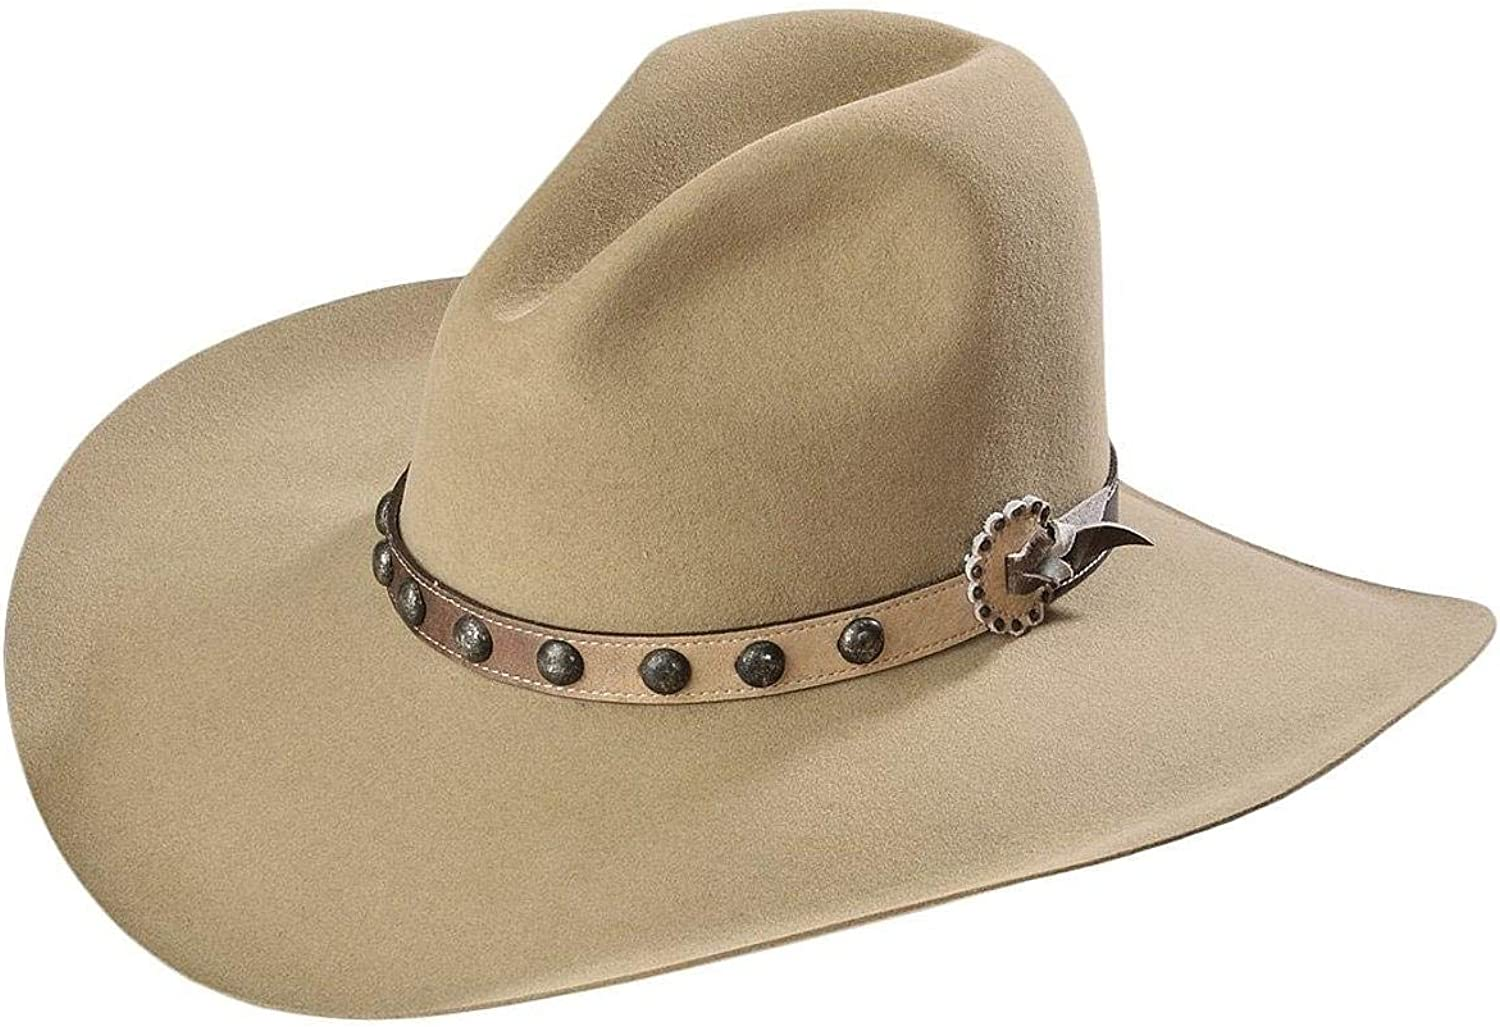 Stetson Our shop OFFers the best service SBBBOW-6943 Broken Hat Bow Max 65% OFF